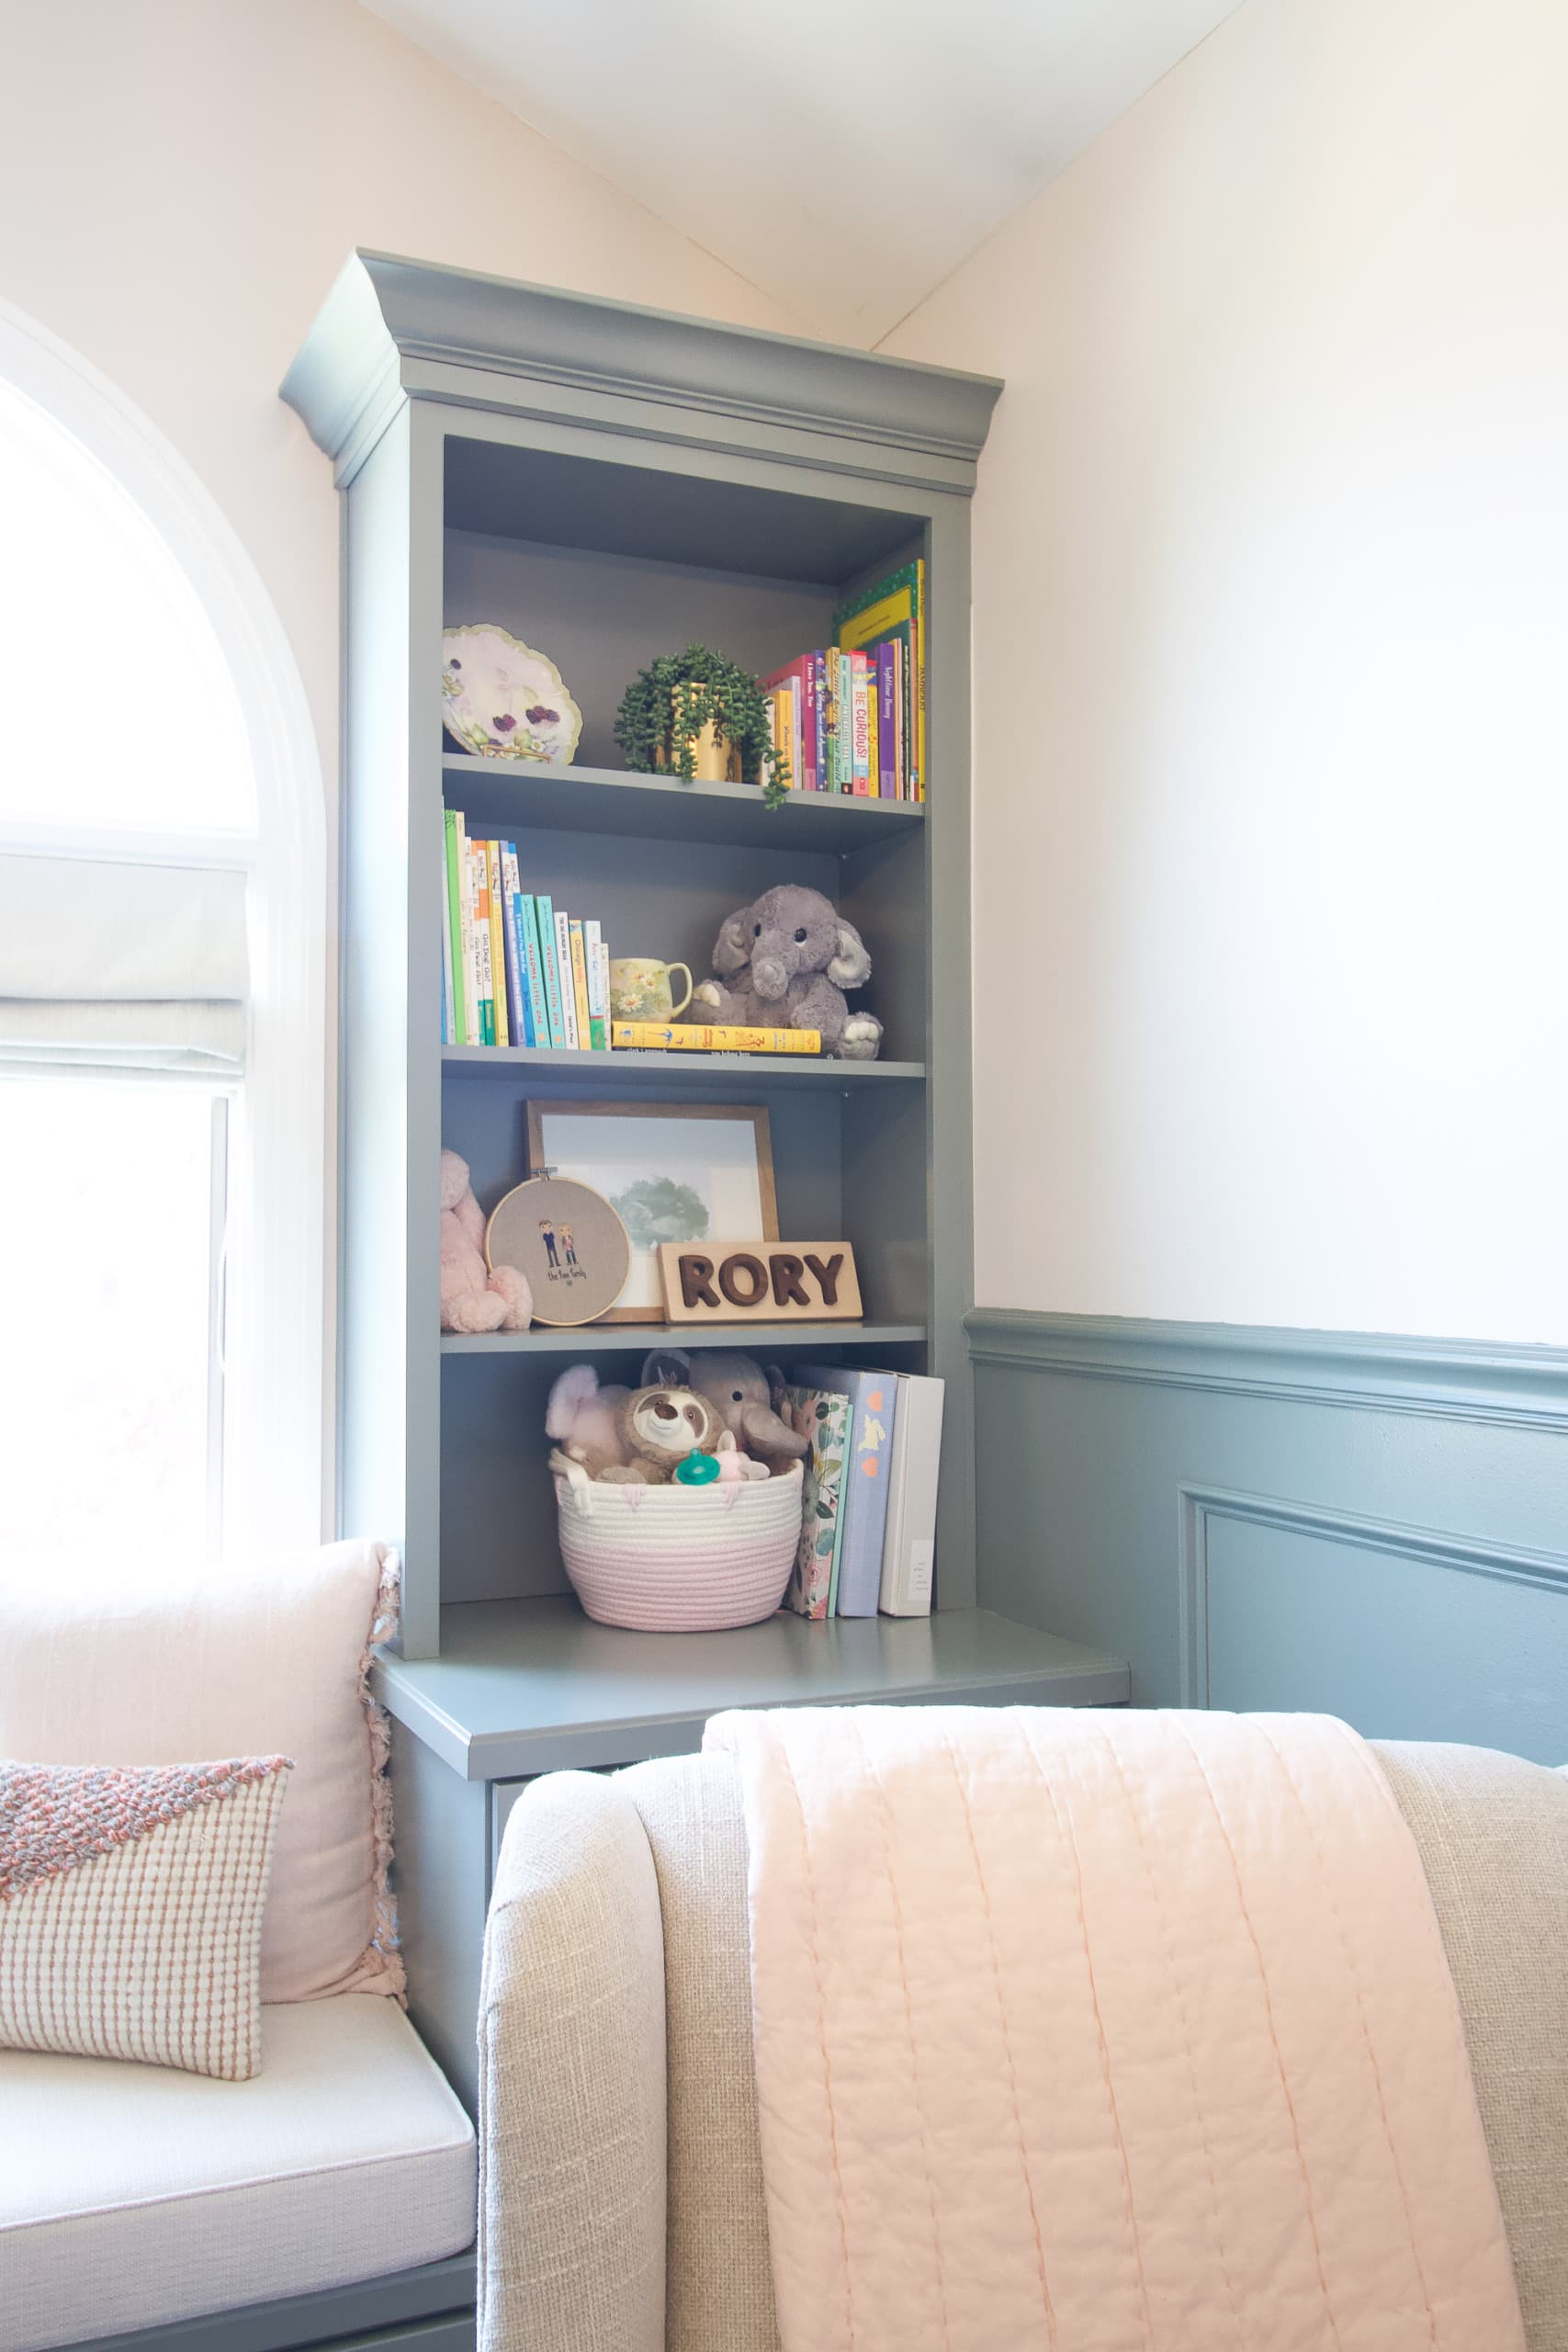 Best tips to style shelves in a nursery